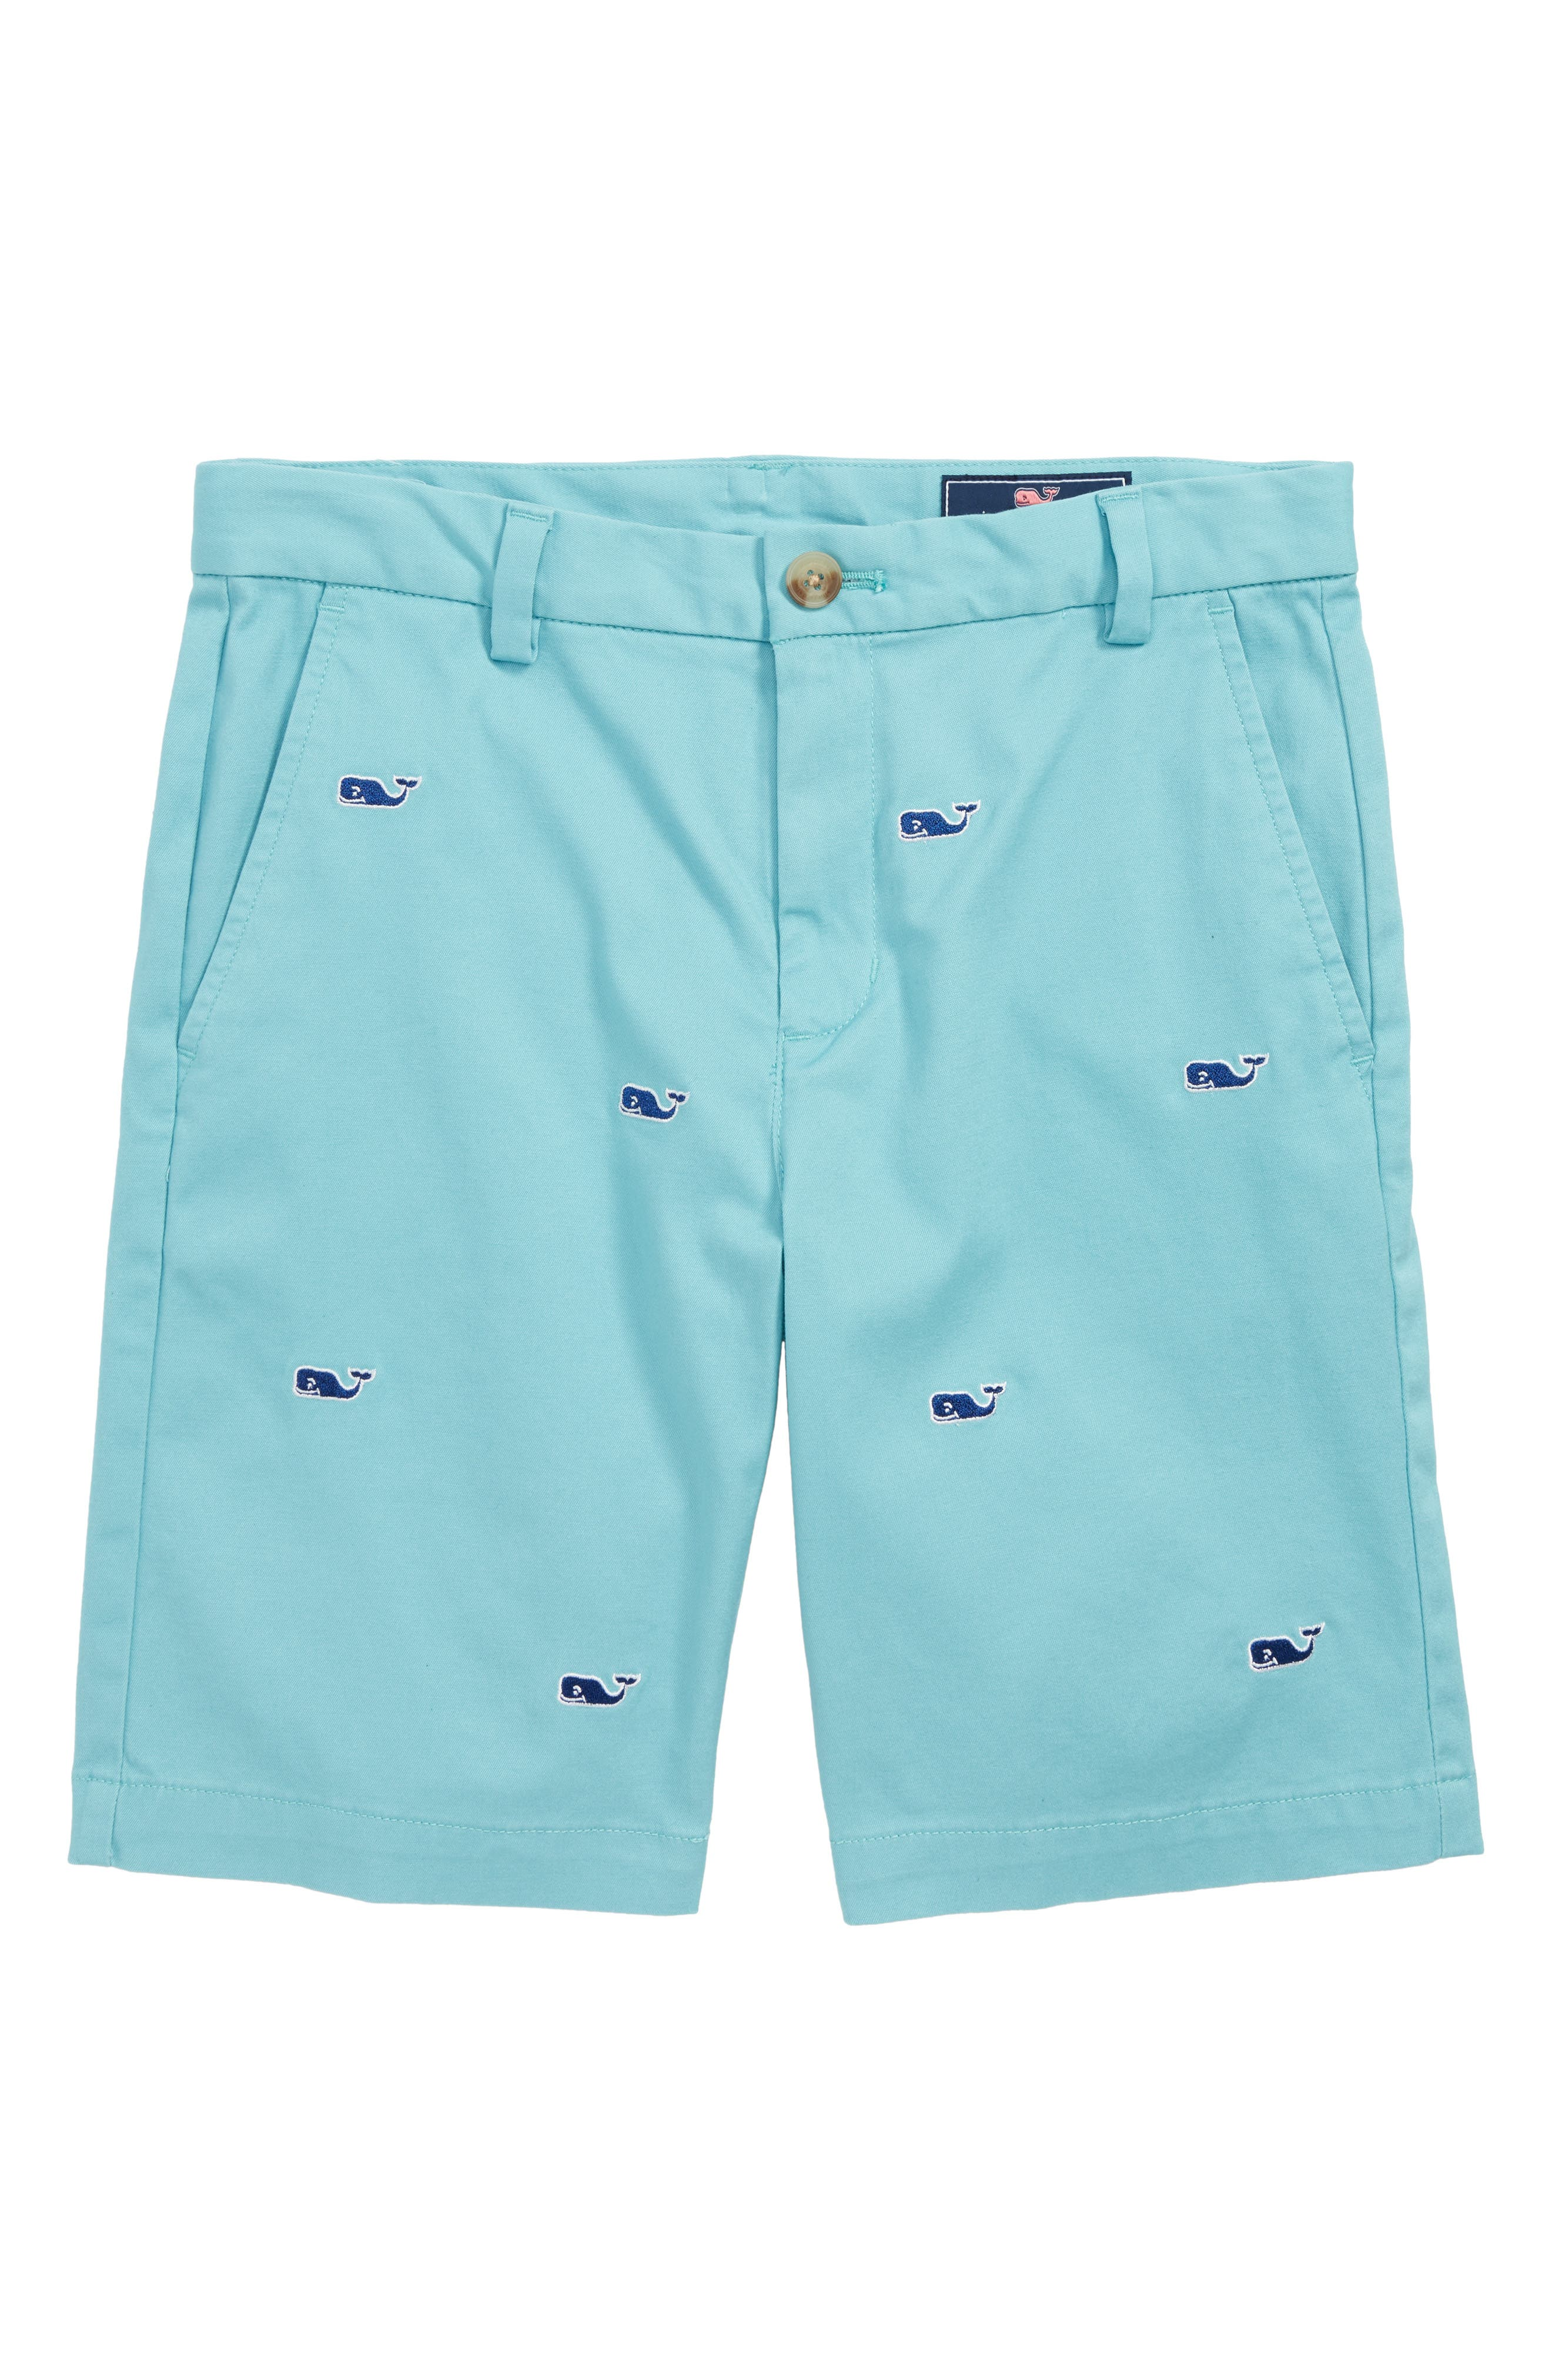 Whale Embroidered Breaker Shorts,                         Main,                         color, AQUA OCEAN